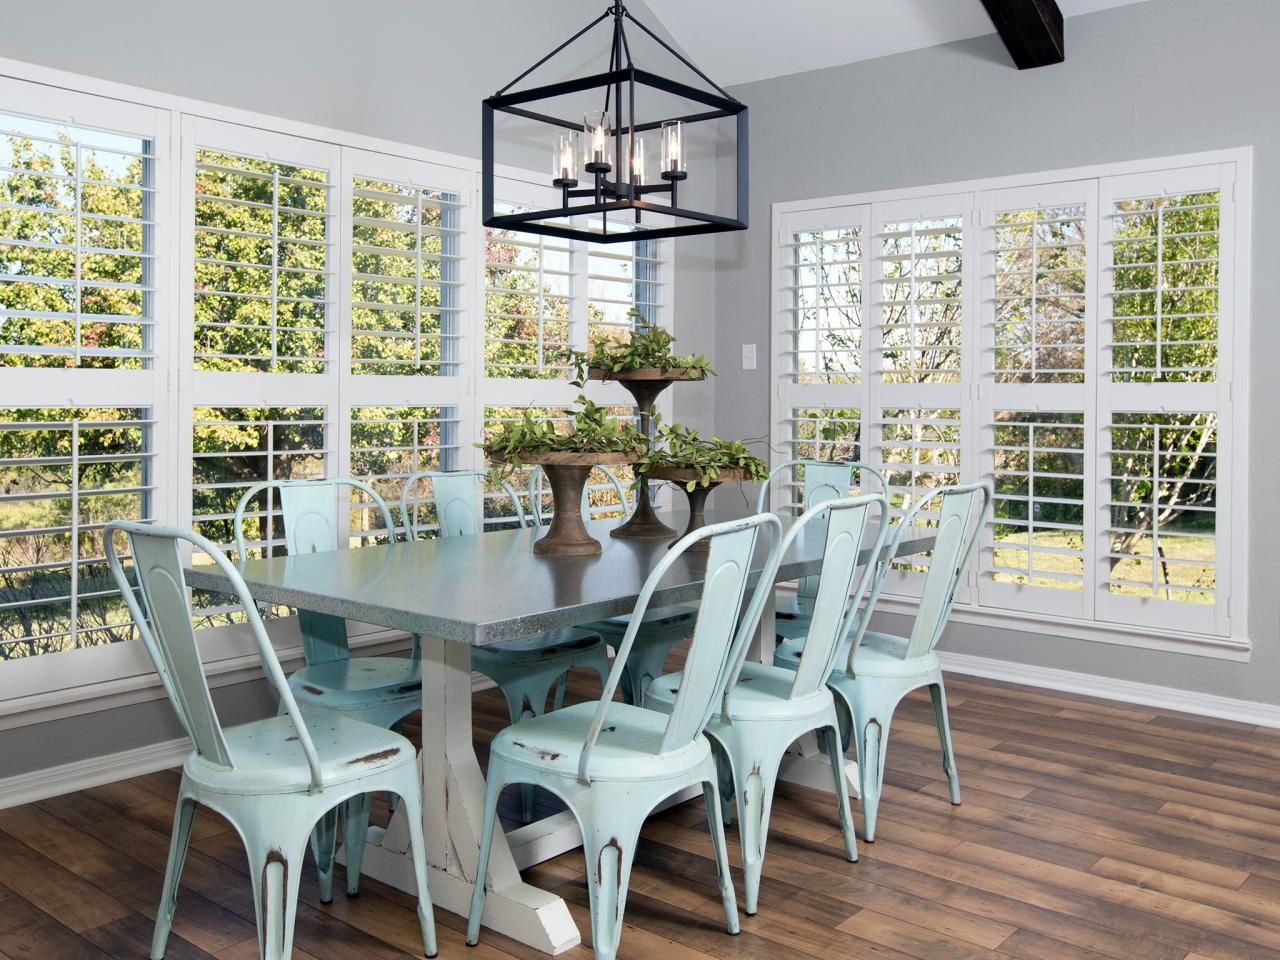 9 design tricks we learned from joanna gaines wooden dining